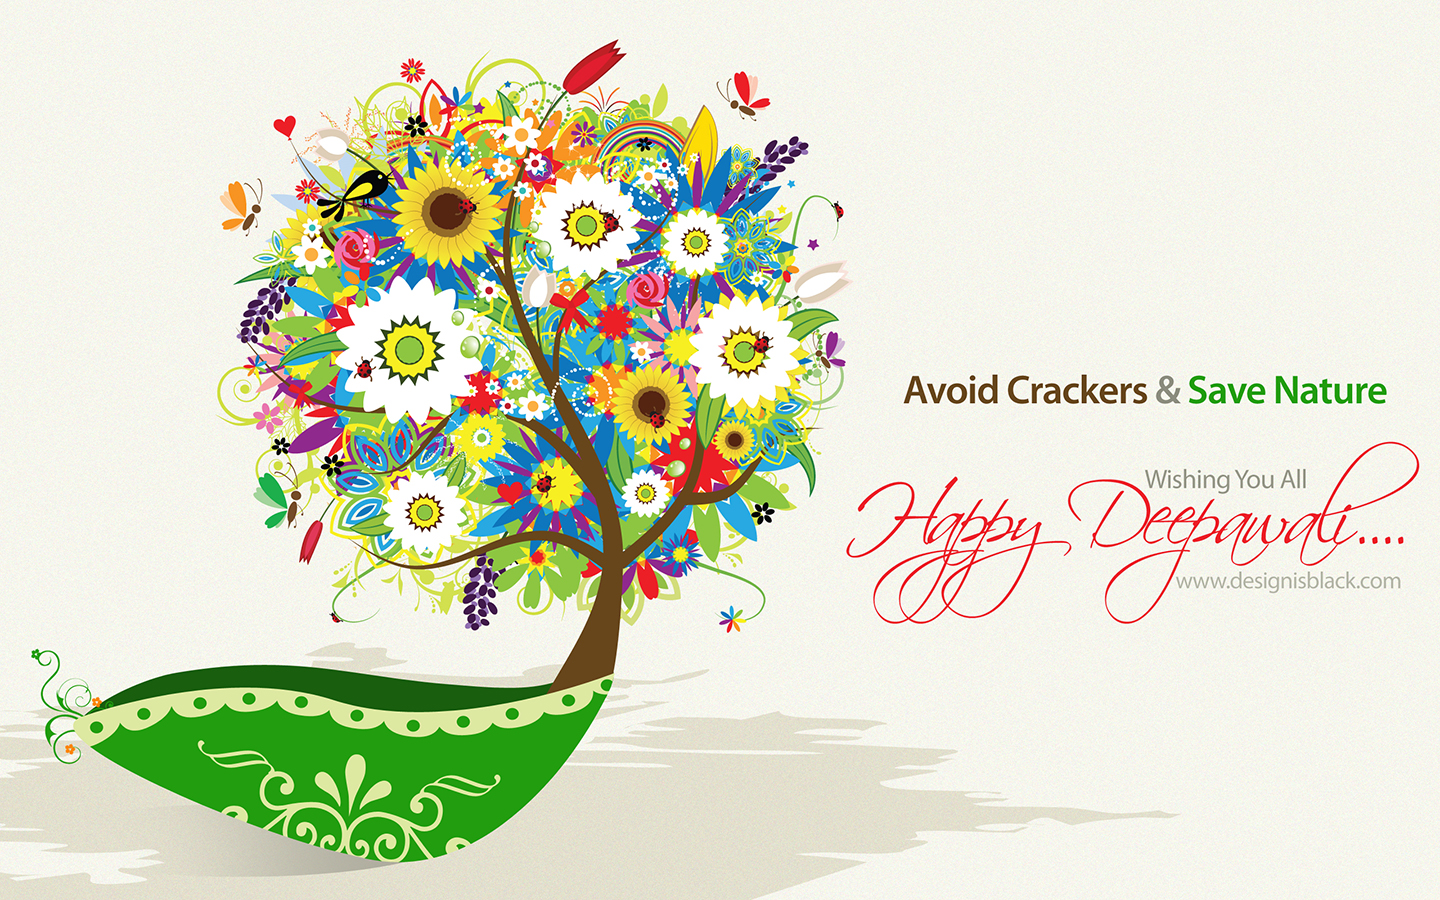 Happy Deepawali Wallpaper 2010 by princepal